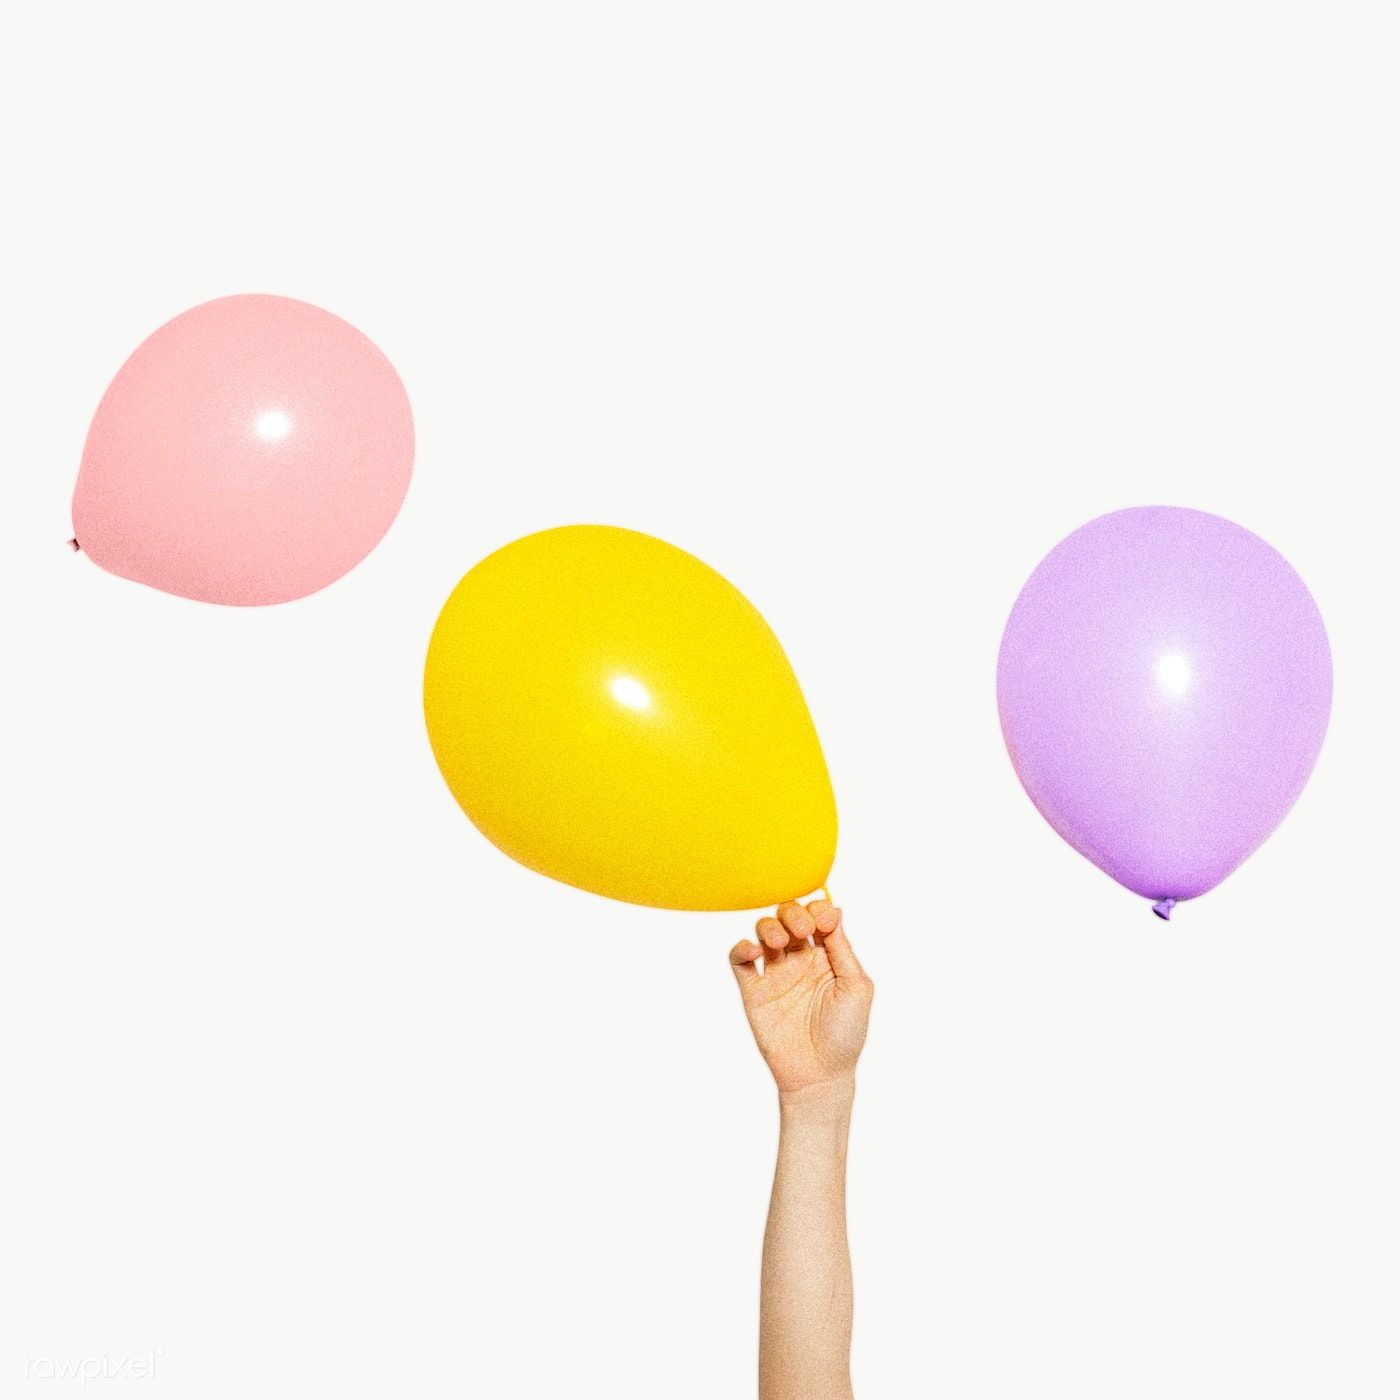 Hand Holding A Yellow Balloon Transparent Png Premium Image By Rawpixel Com Kwanloy Yellow Balloons Balloons Balloon Background